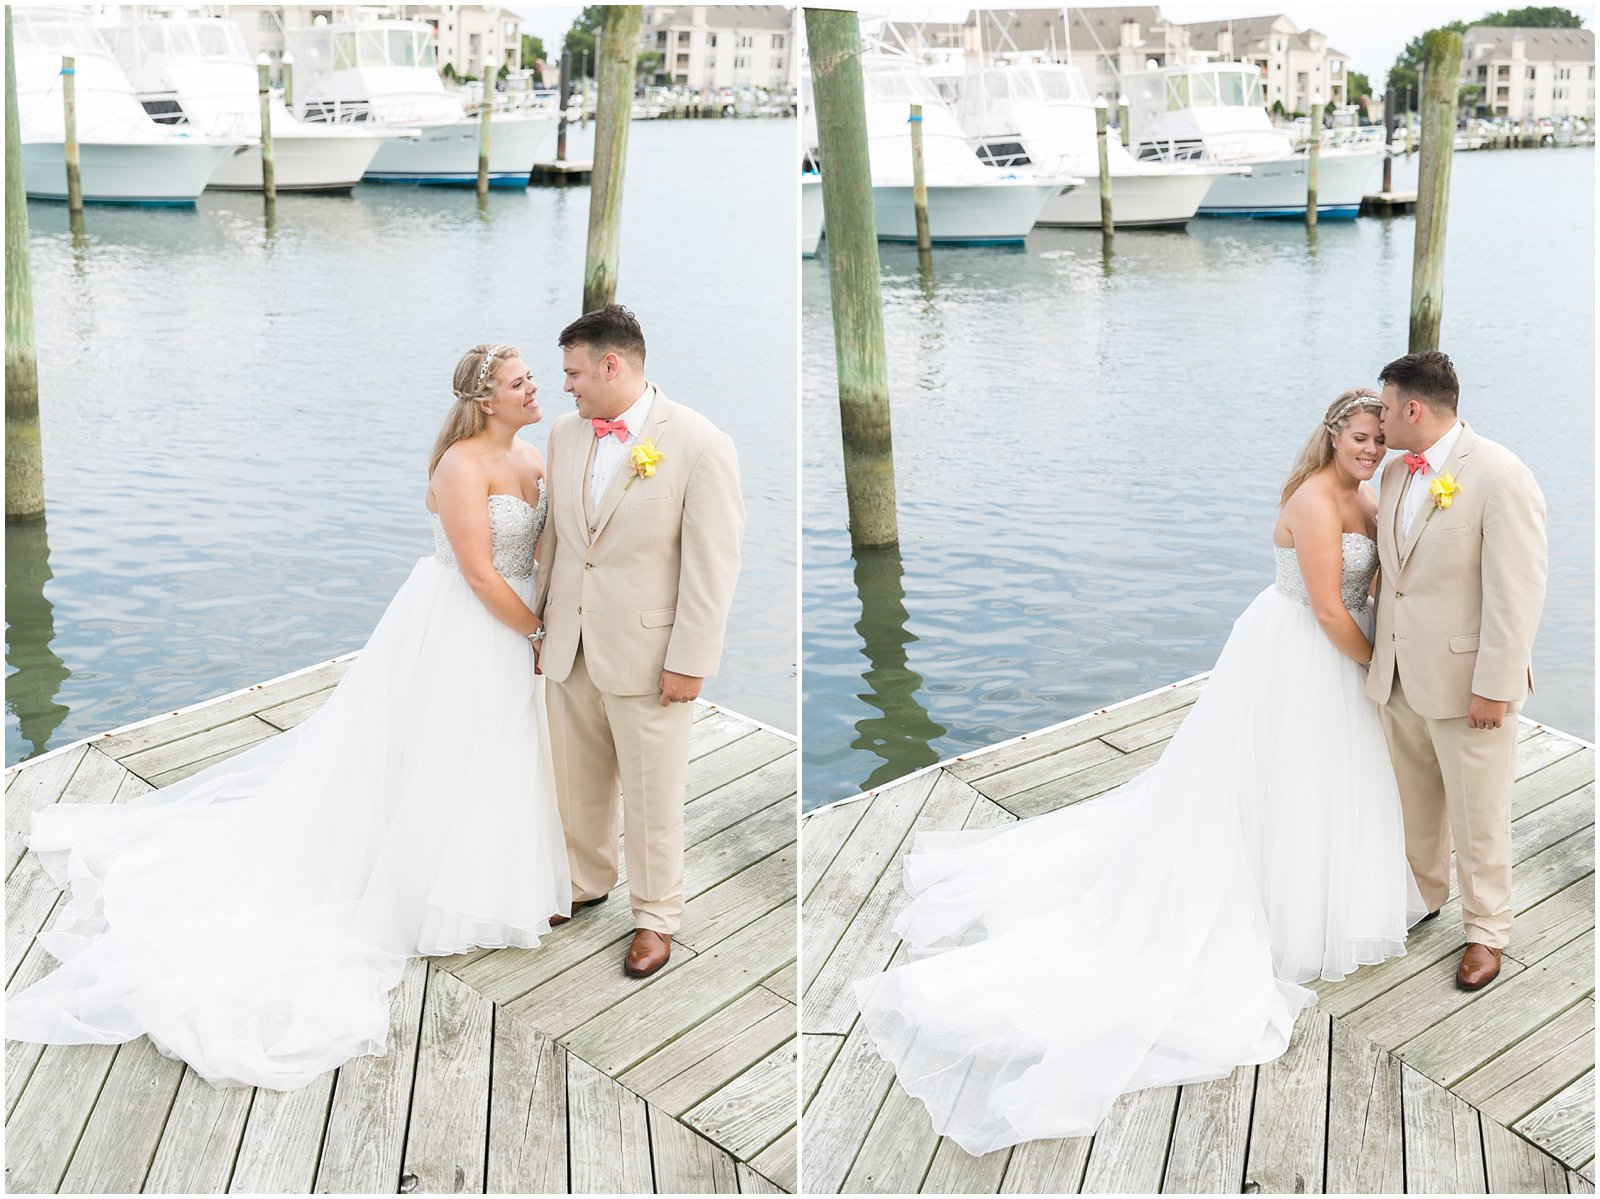 jessica_ryan_photography_wedding_virginia_beach_virginia_wedding_photographer_candid_wedding_photography_lifestyle_photojournalistic_real_moments_0114